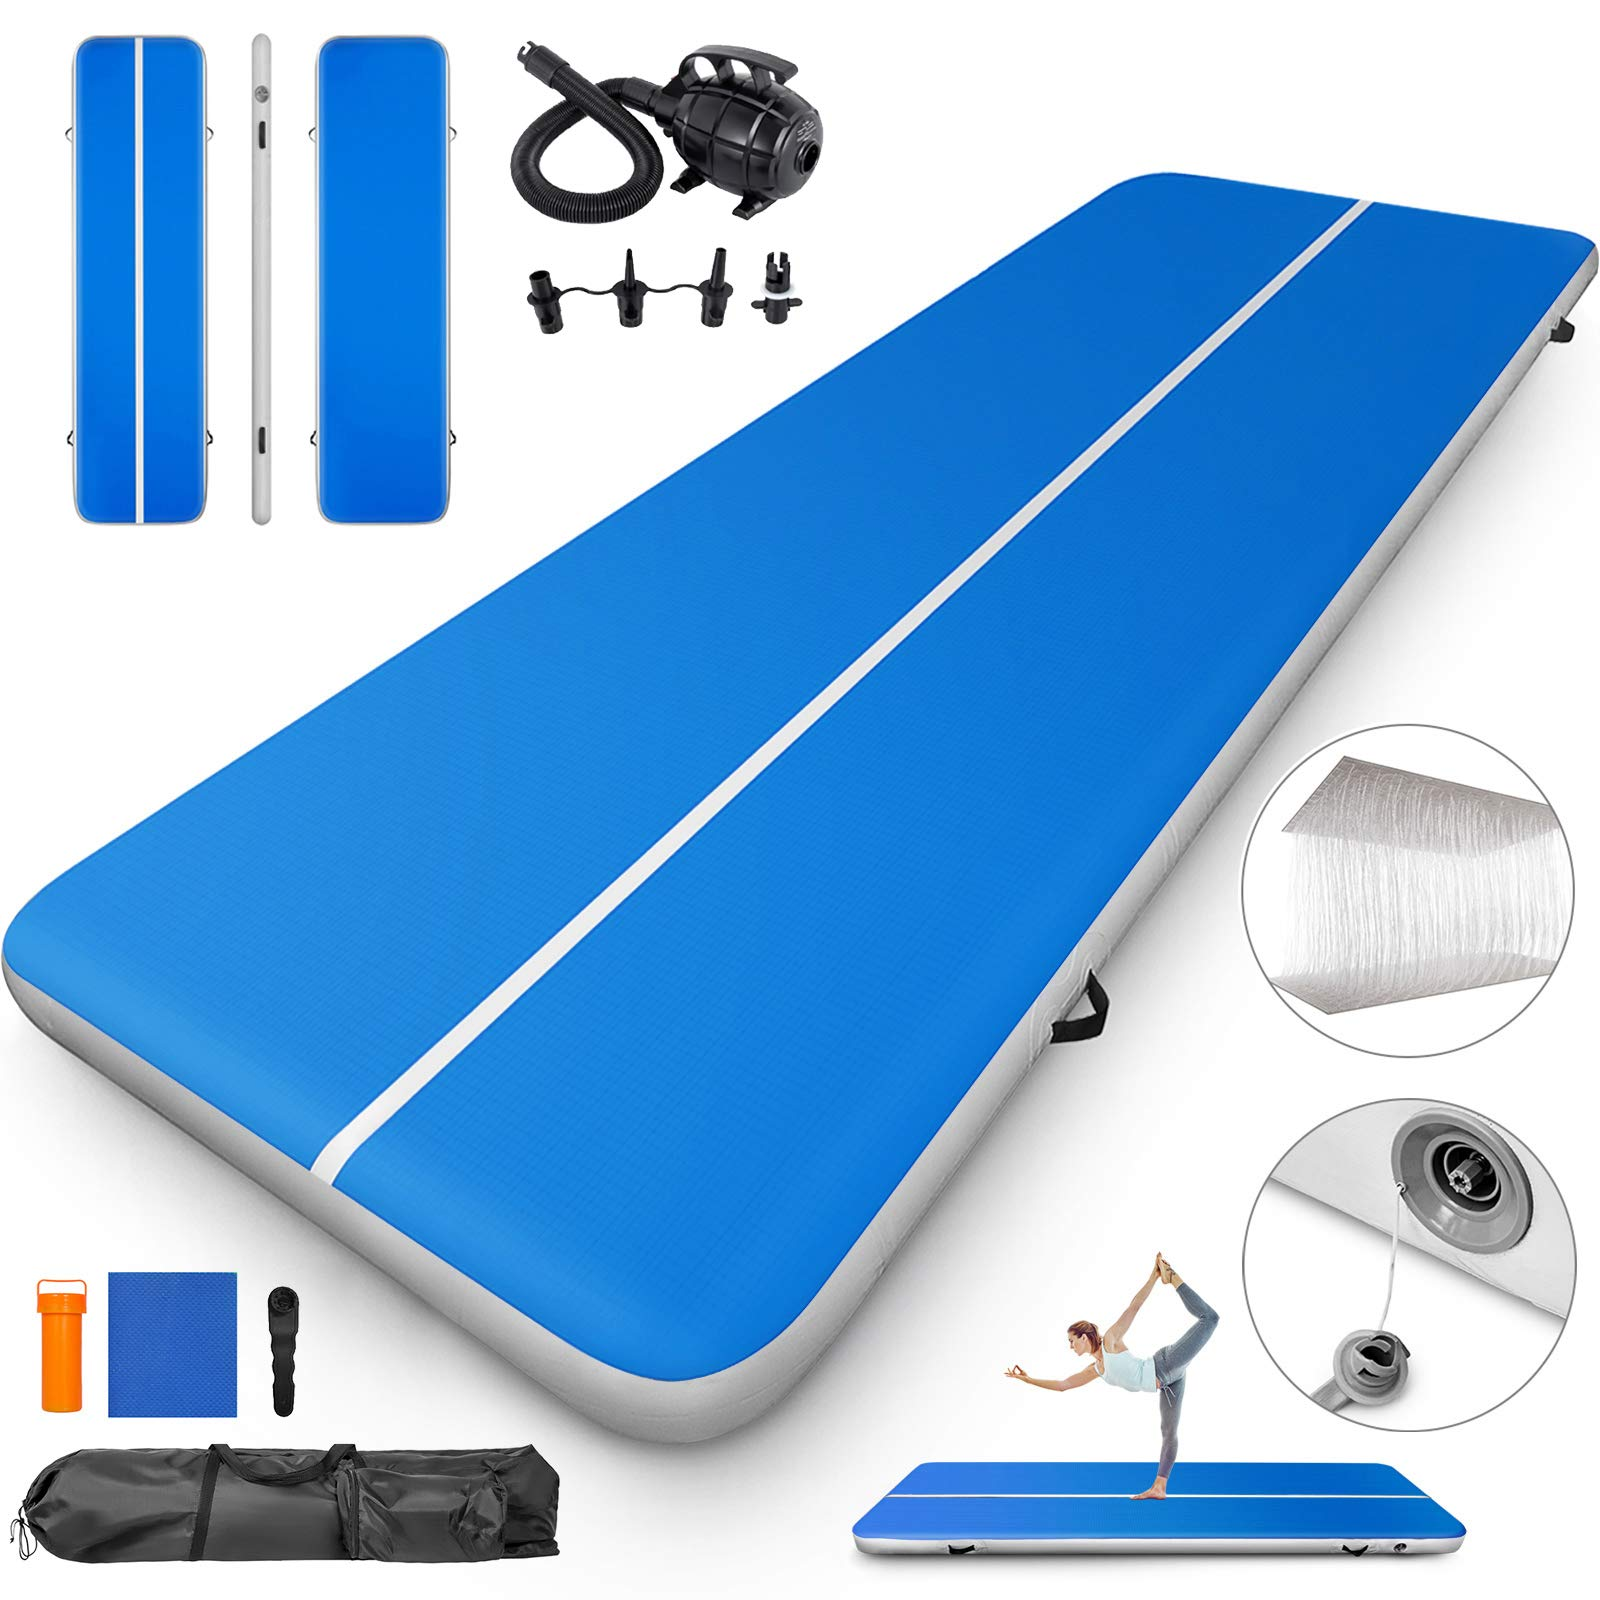 Happybuy 10ft/13ft/17ft/20ft/23ft/26ft/33ft Air Track 8 inches Thick Tumbling Mat Inflatable Gymnastics Airtrack for Home/Cheerleading/Yoga/Parkour/Water with Pump (Blue(40x4in), 13)